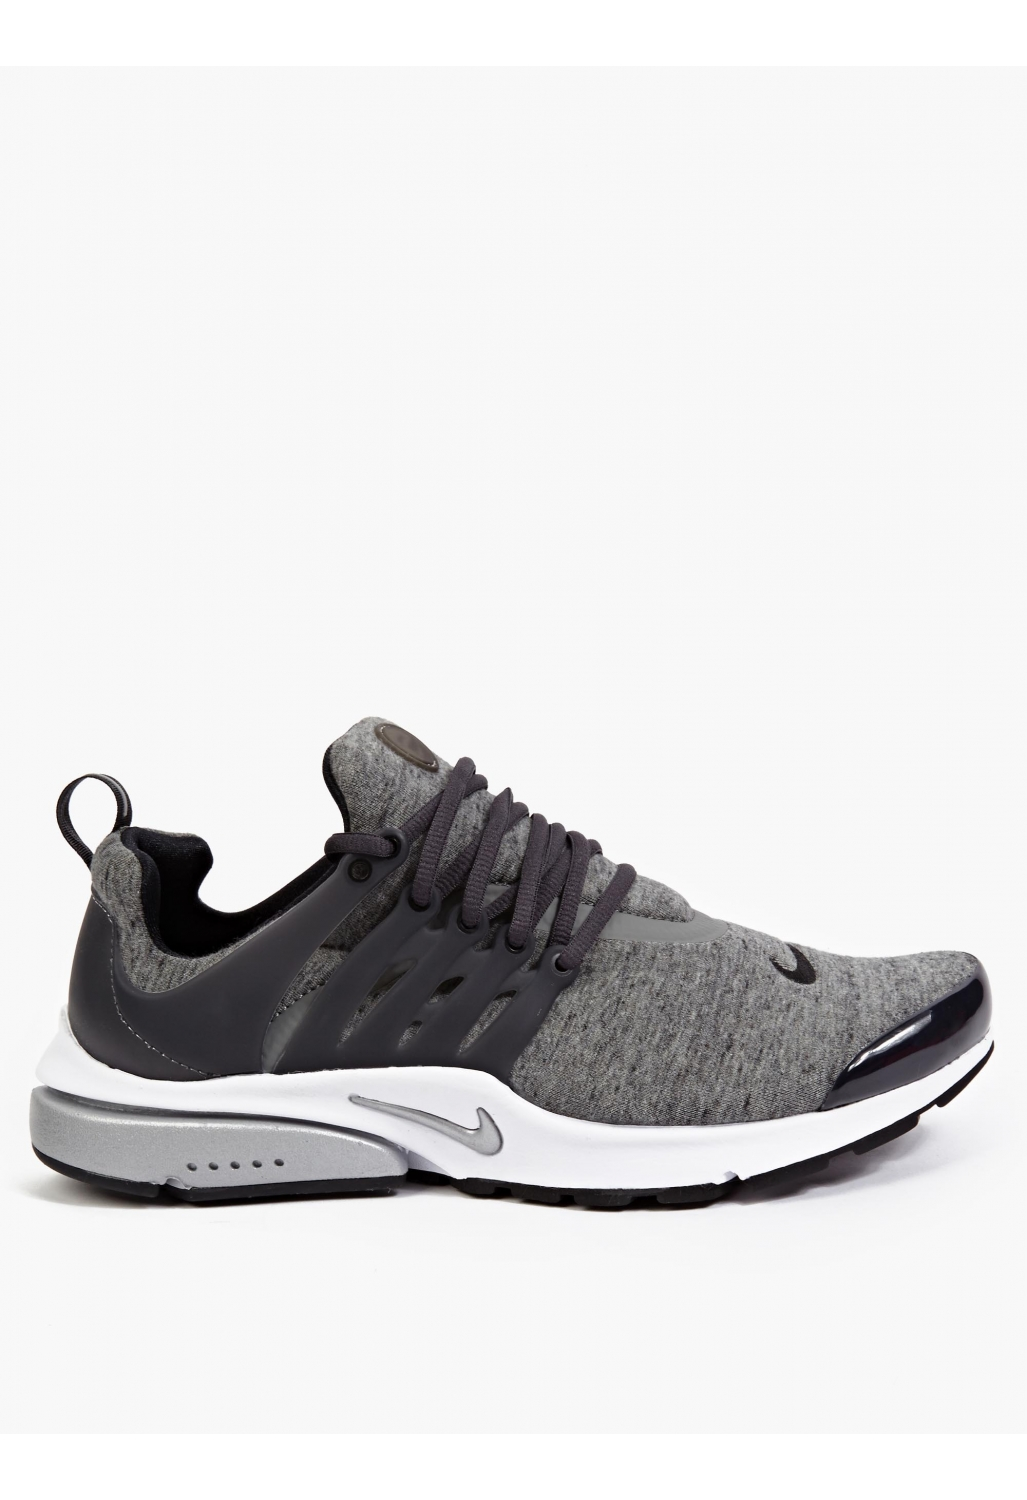 Nike-Air-Presto-wallpaper-wp4608645